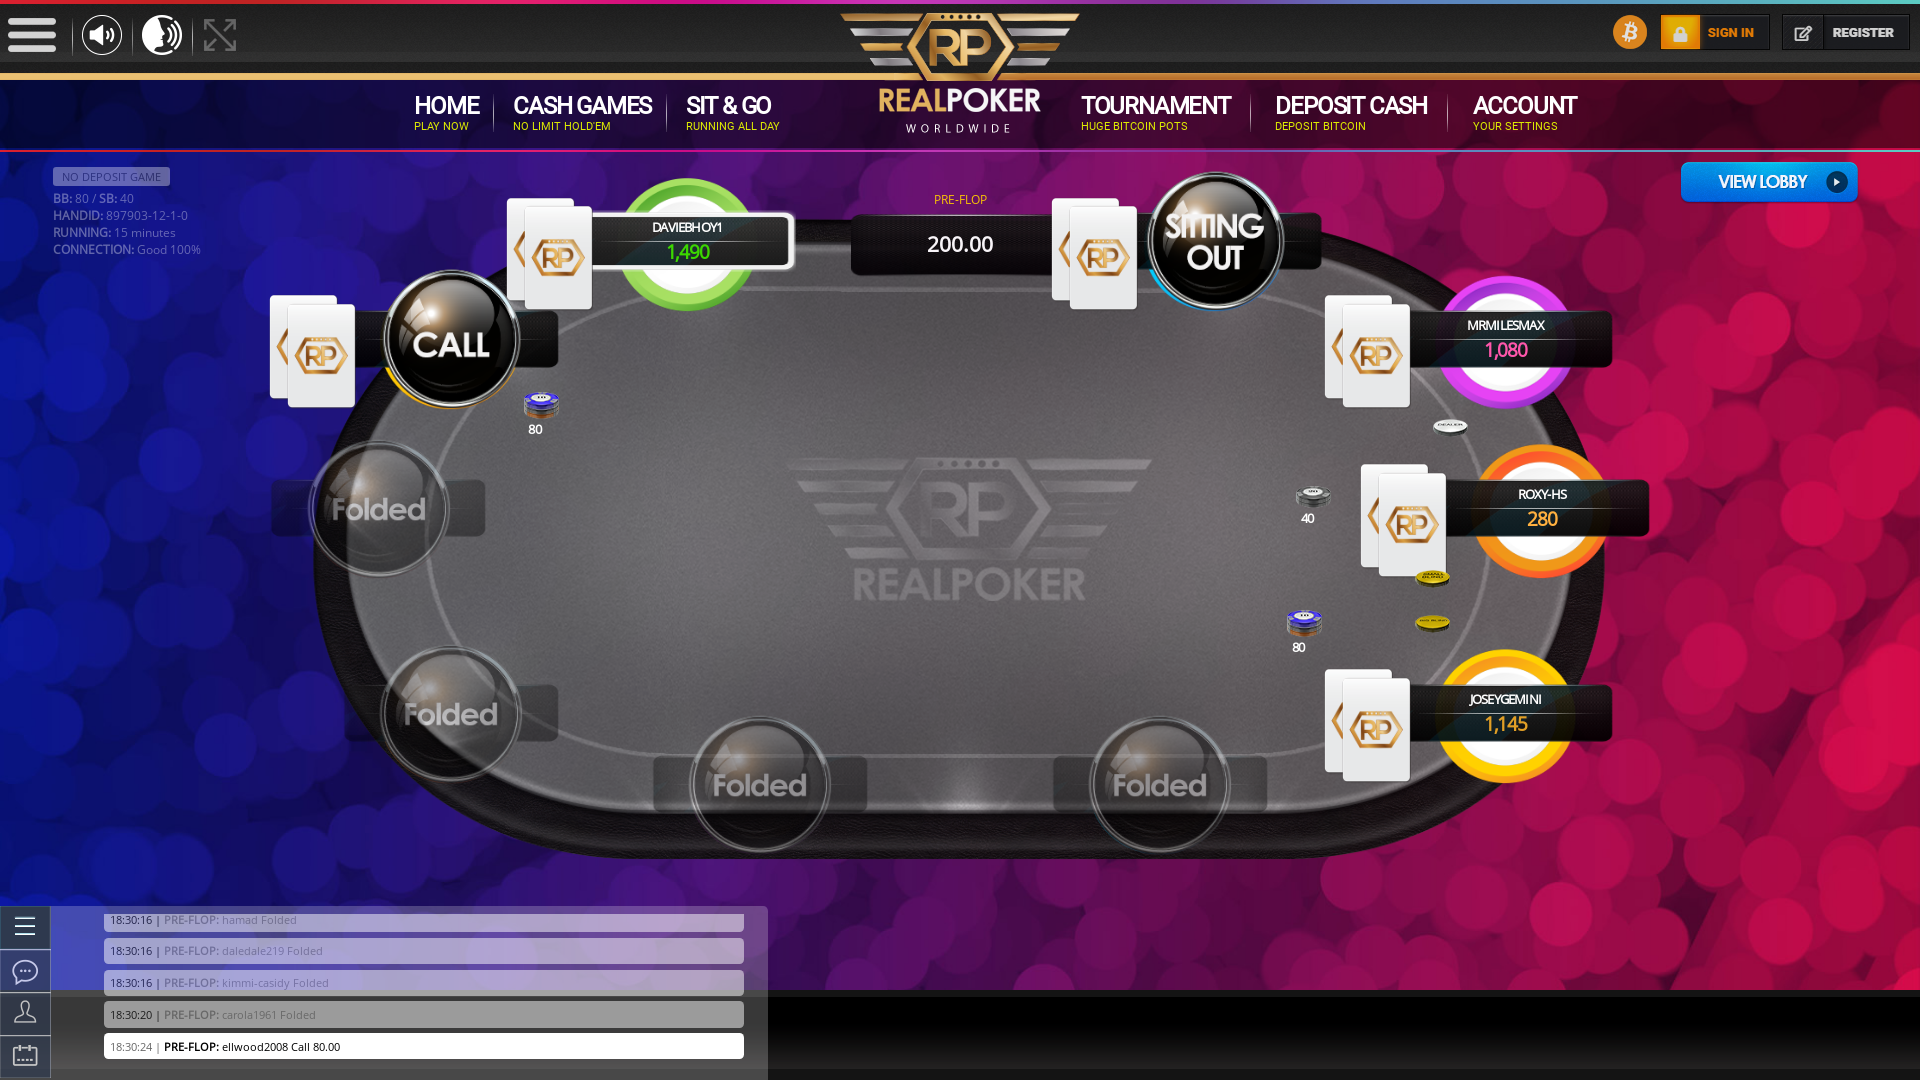 Real poker 10 player table in the 15th minute